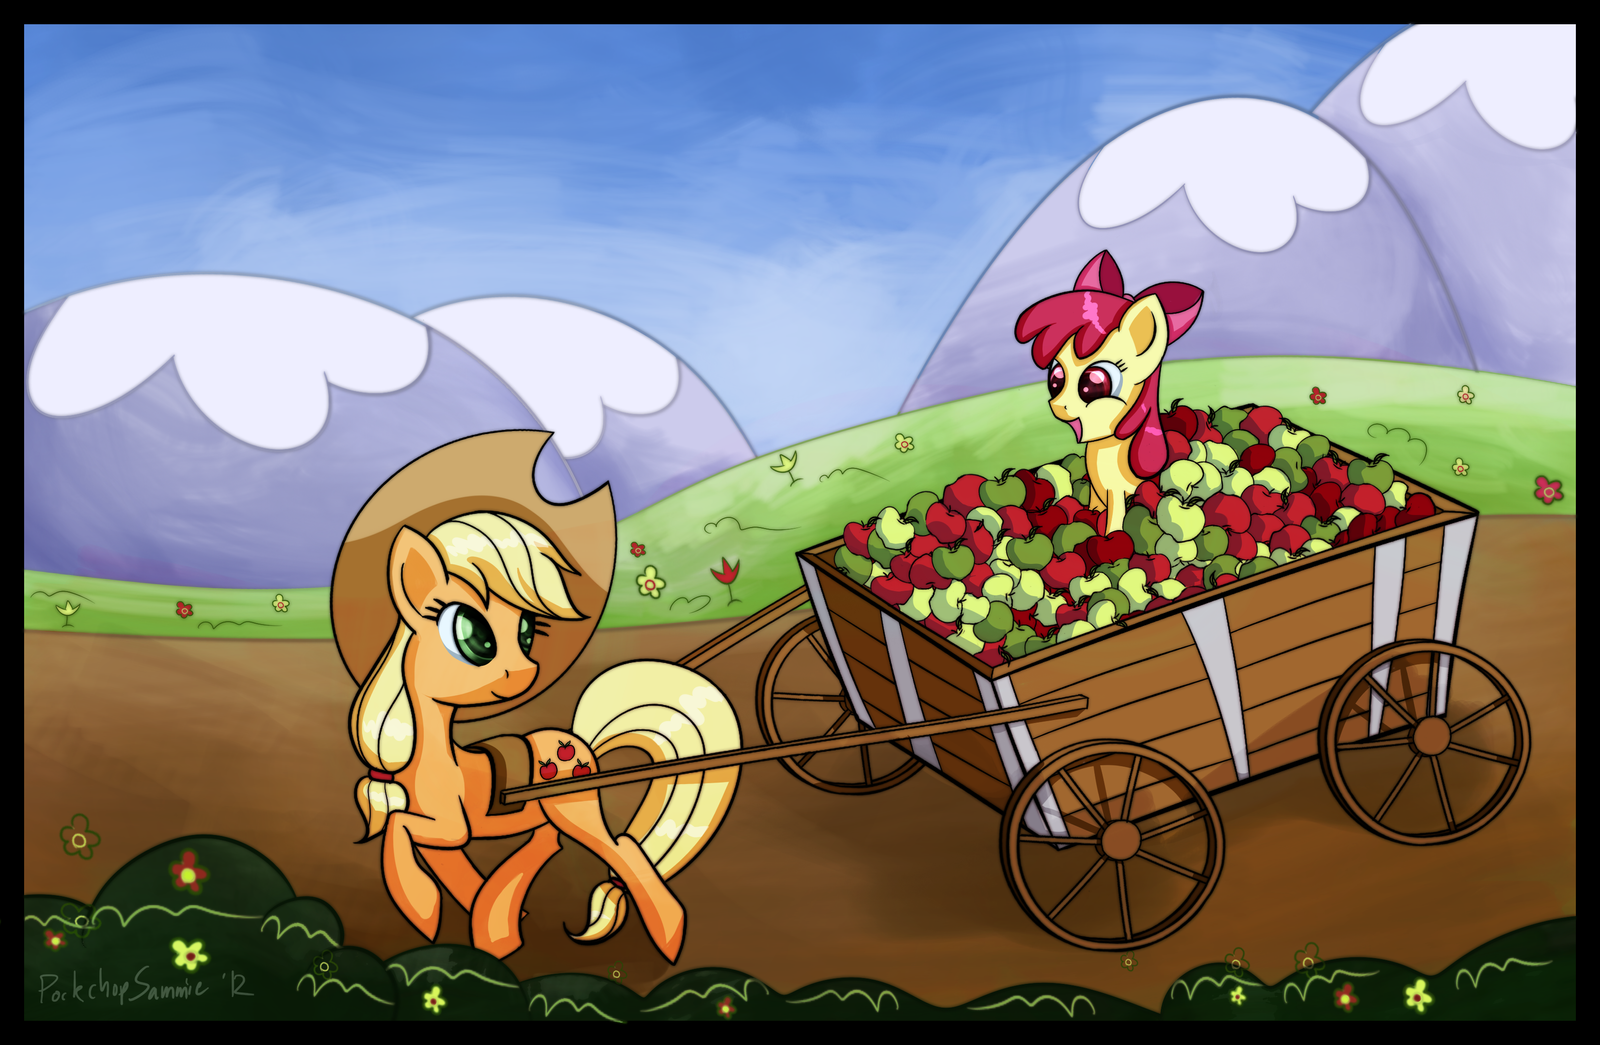 Idyllic Afternoon by porkchopsammie